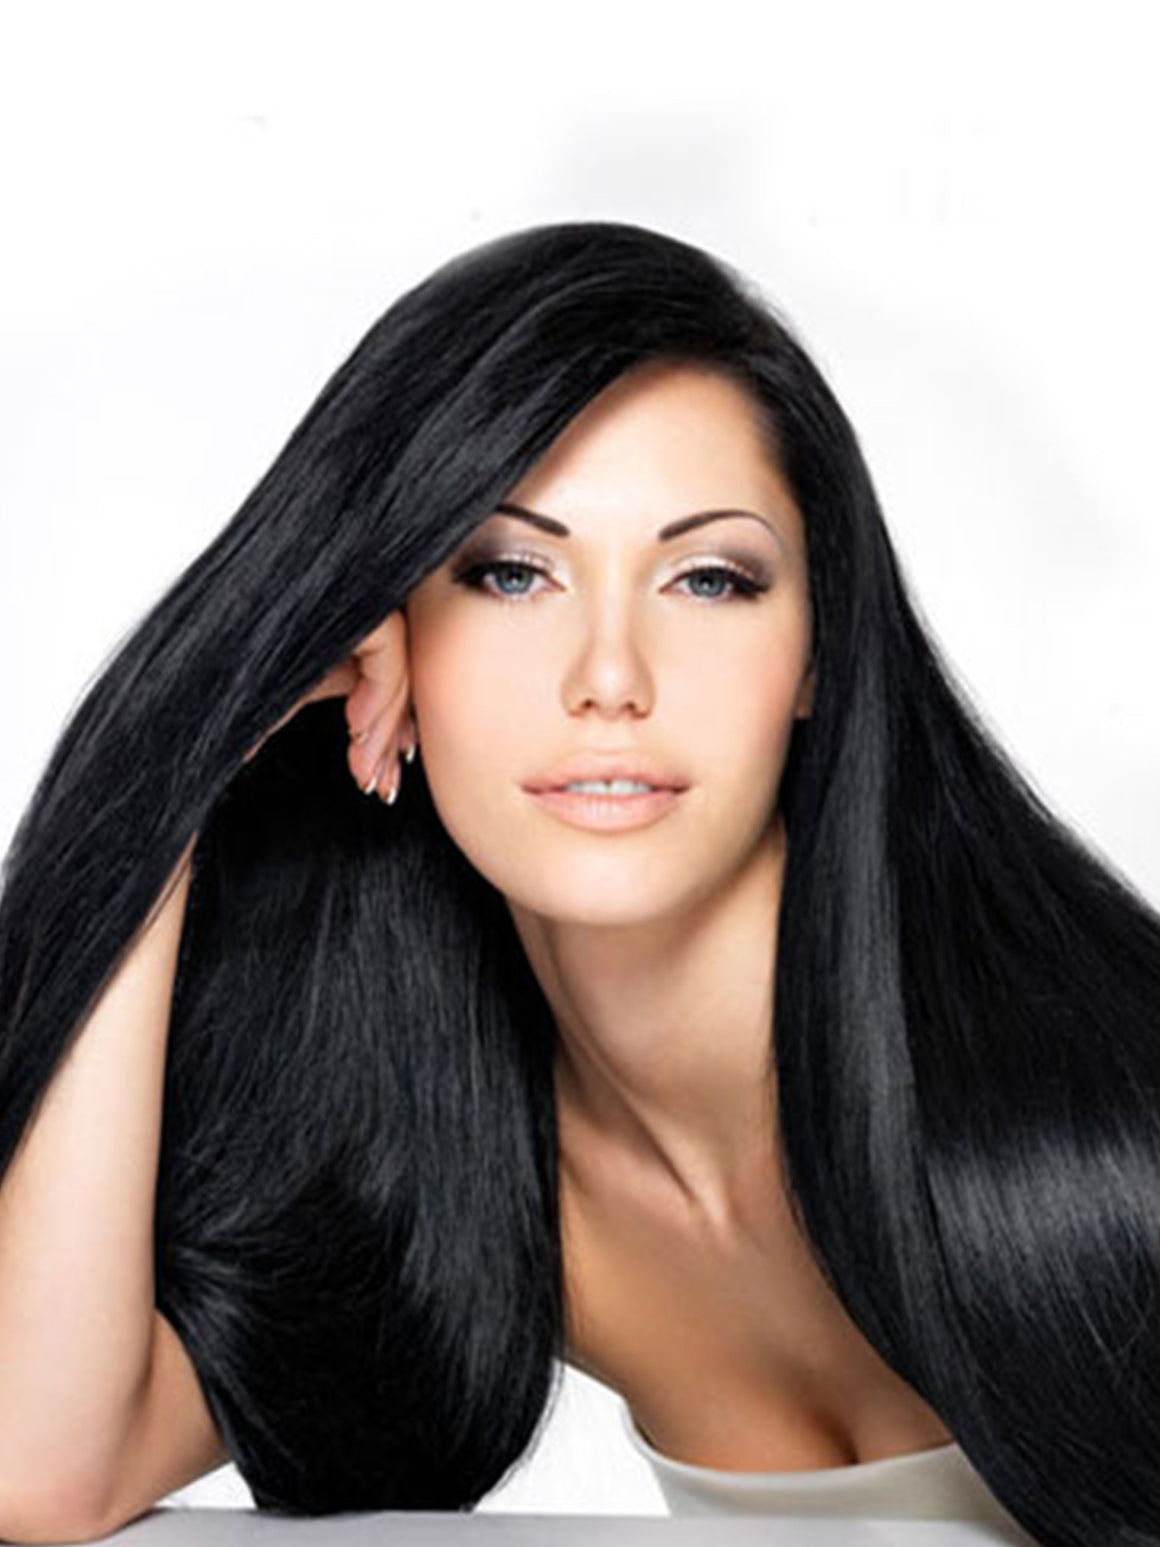 "Indian Remy Silky Straight Human Hair Extensions - Wefted Hair 12"" - Hairesthetic"